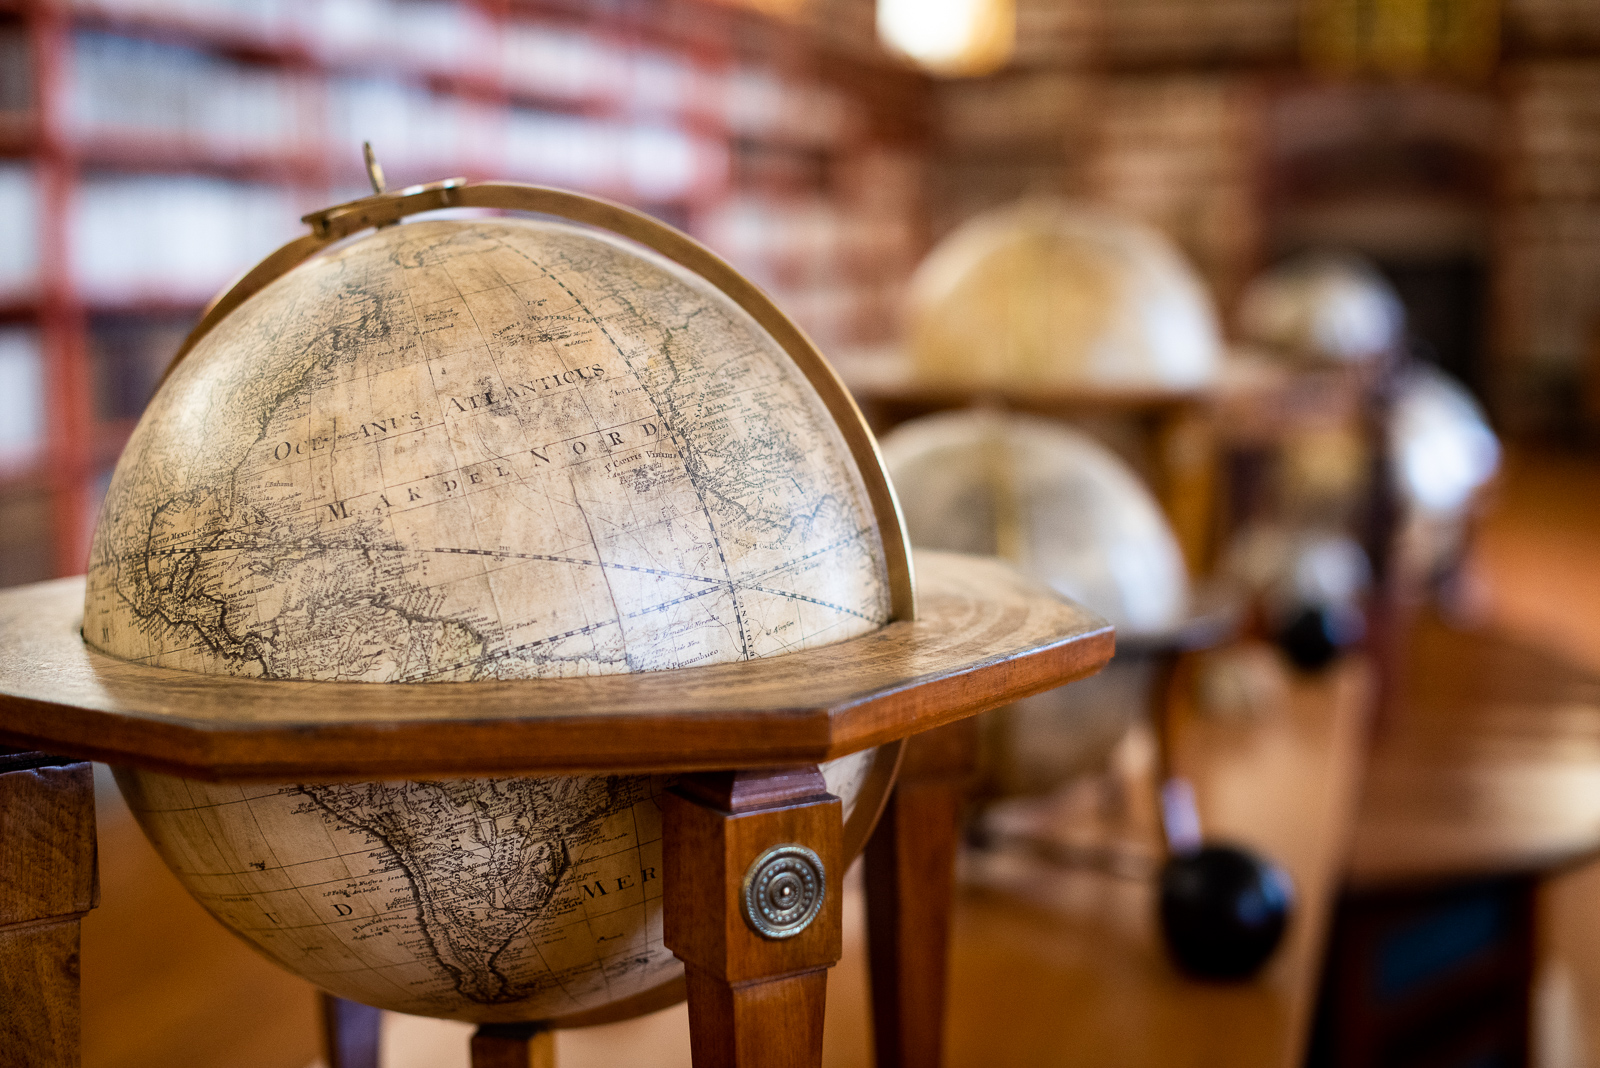 antique globes in the theological hall